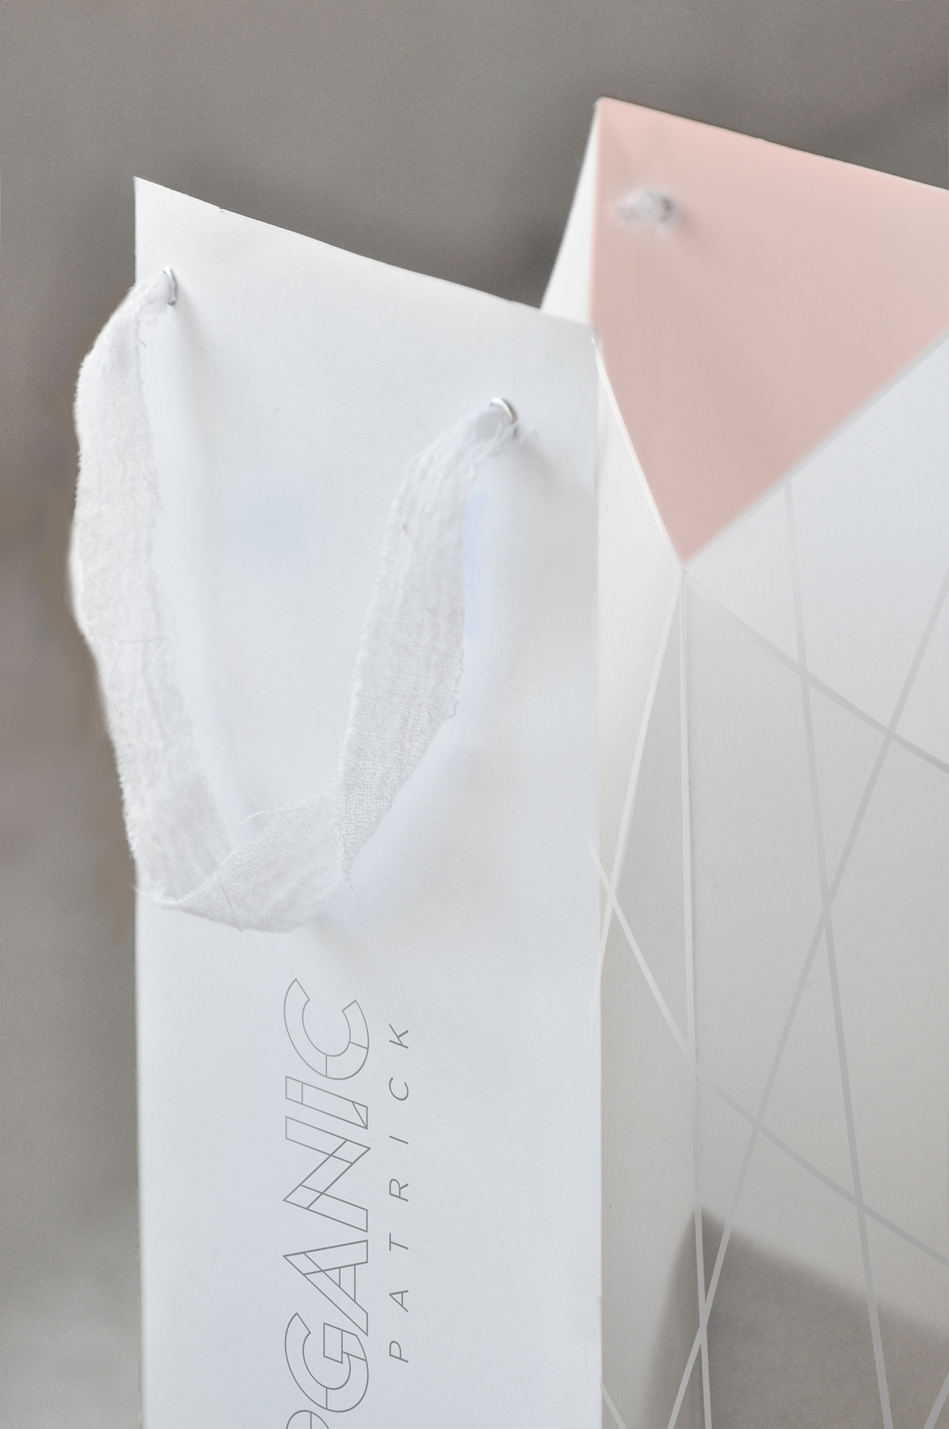 Packaging_Detail_Bag.jpg